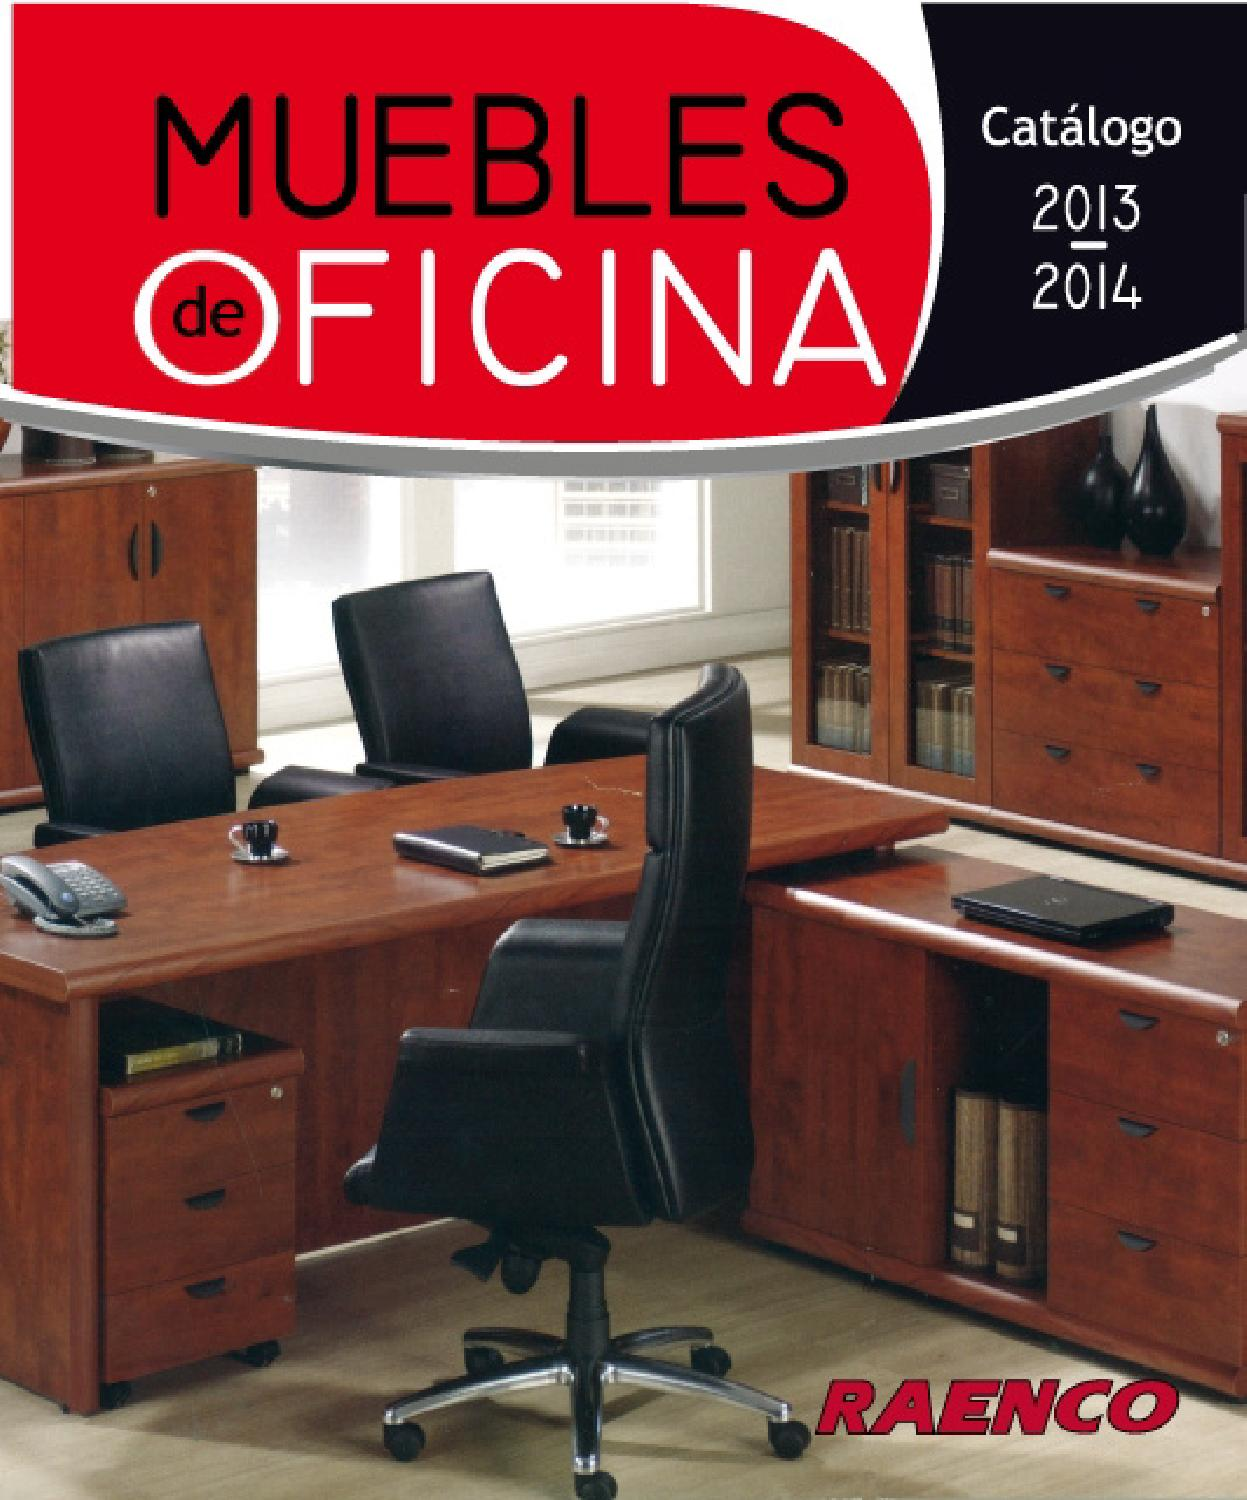 Cat logo raenco oficina by interiores estilo issuu for Muebles de oficina talego